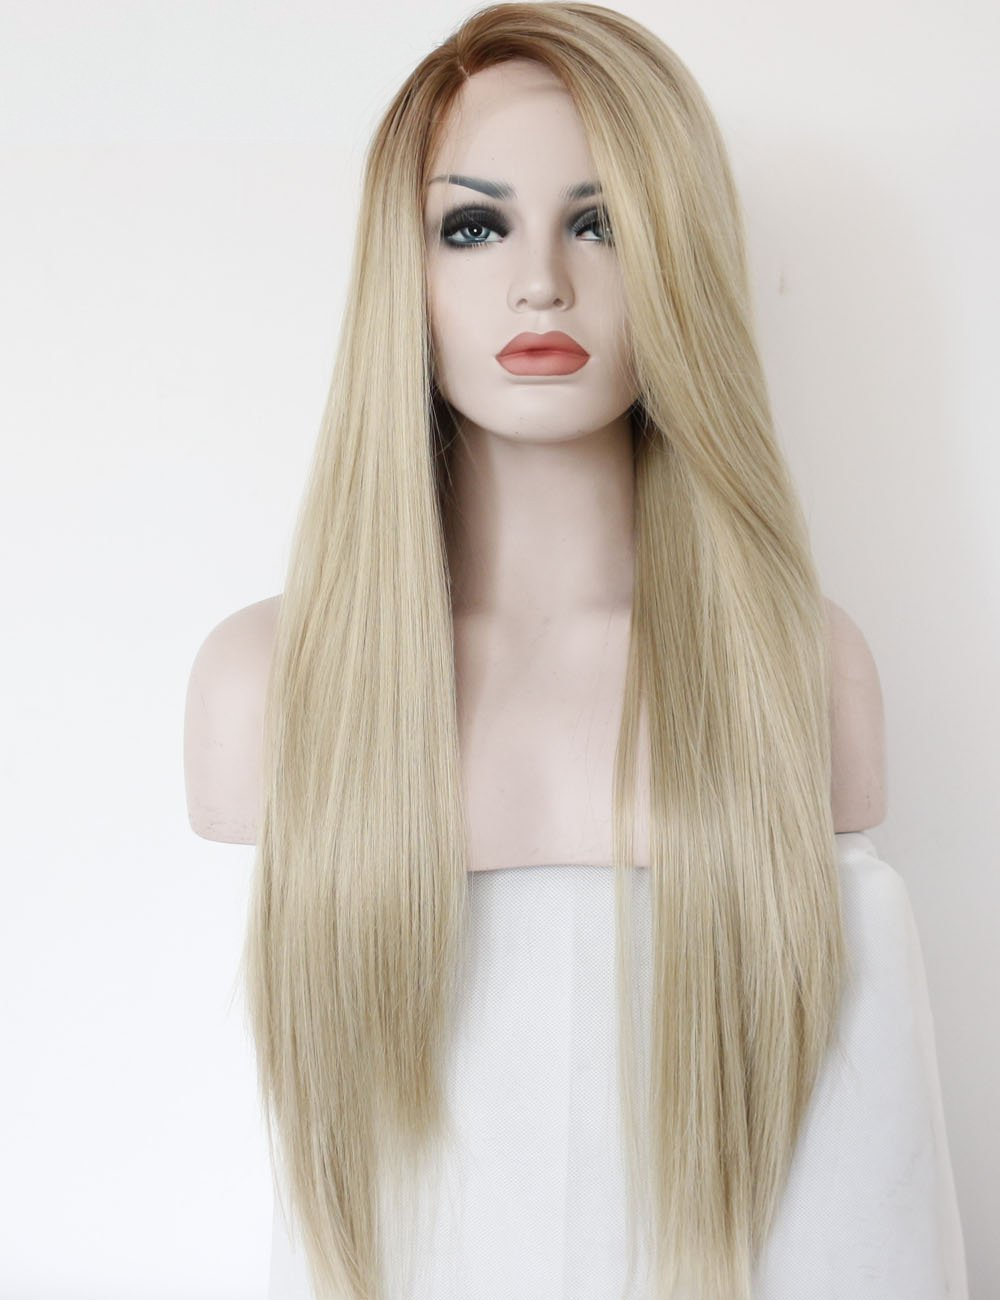 K'ryssma Fashion Ombre Blonde Glueless Lace Front Wigs 2 Tone Color Light Brown Roots #12 Side Part Long Natural Straight Heat Resistant Synthetic Hair Replacement Wig For Women Half Hand Tied by K'ryssma